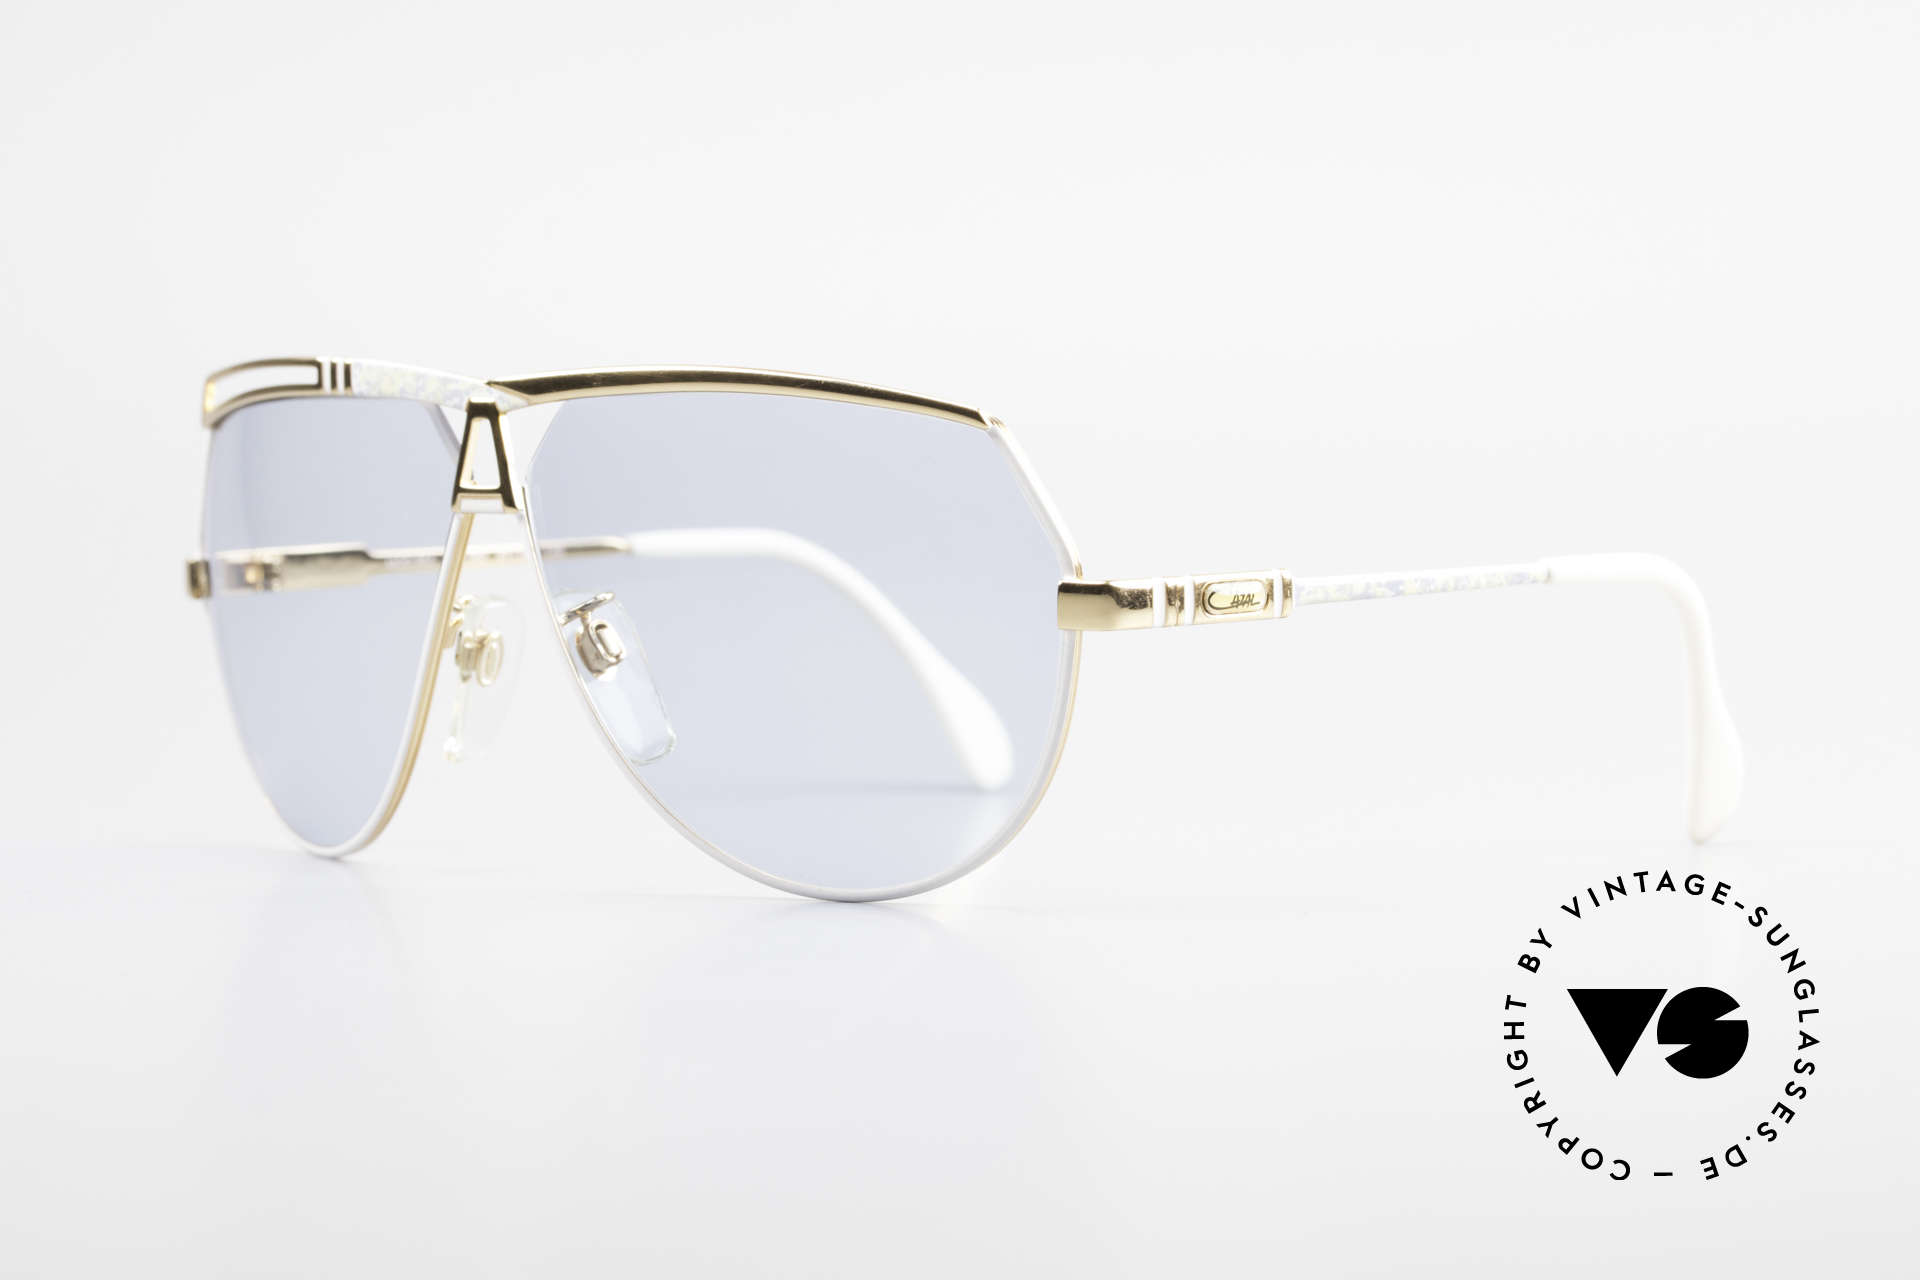 Cazal 954 True Vintage XL Sunglasses, aviator design with huge lenses & great coloring, Made for Men